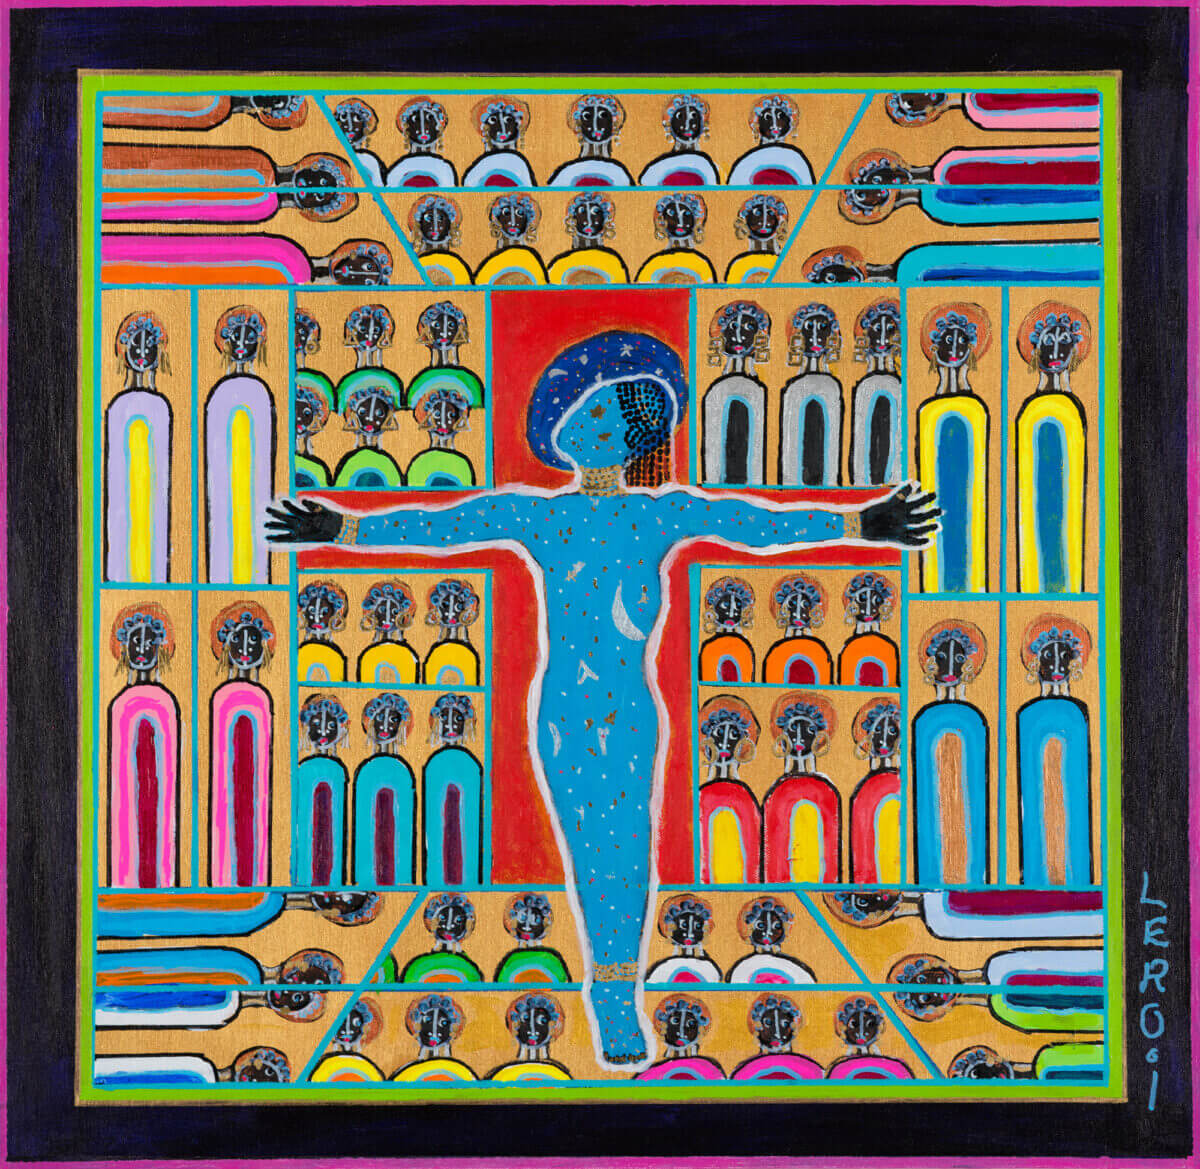 Black Art matters and artist Leroi has been a pioneer in sharing this Black Experience in order to open the minds